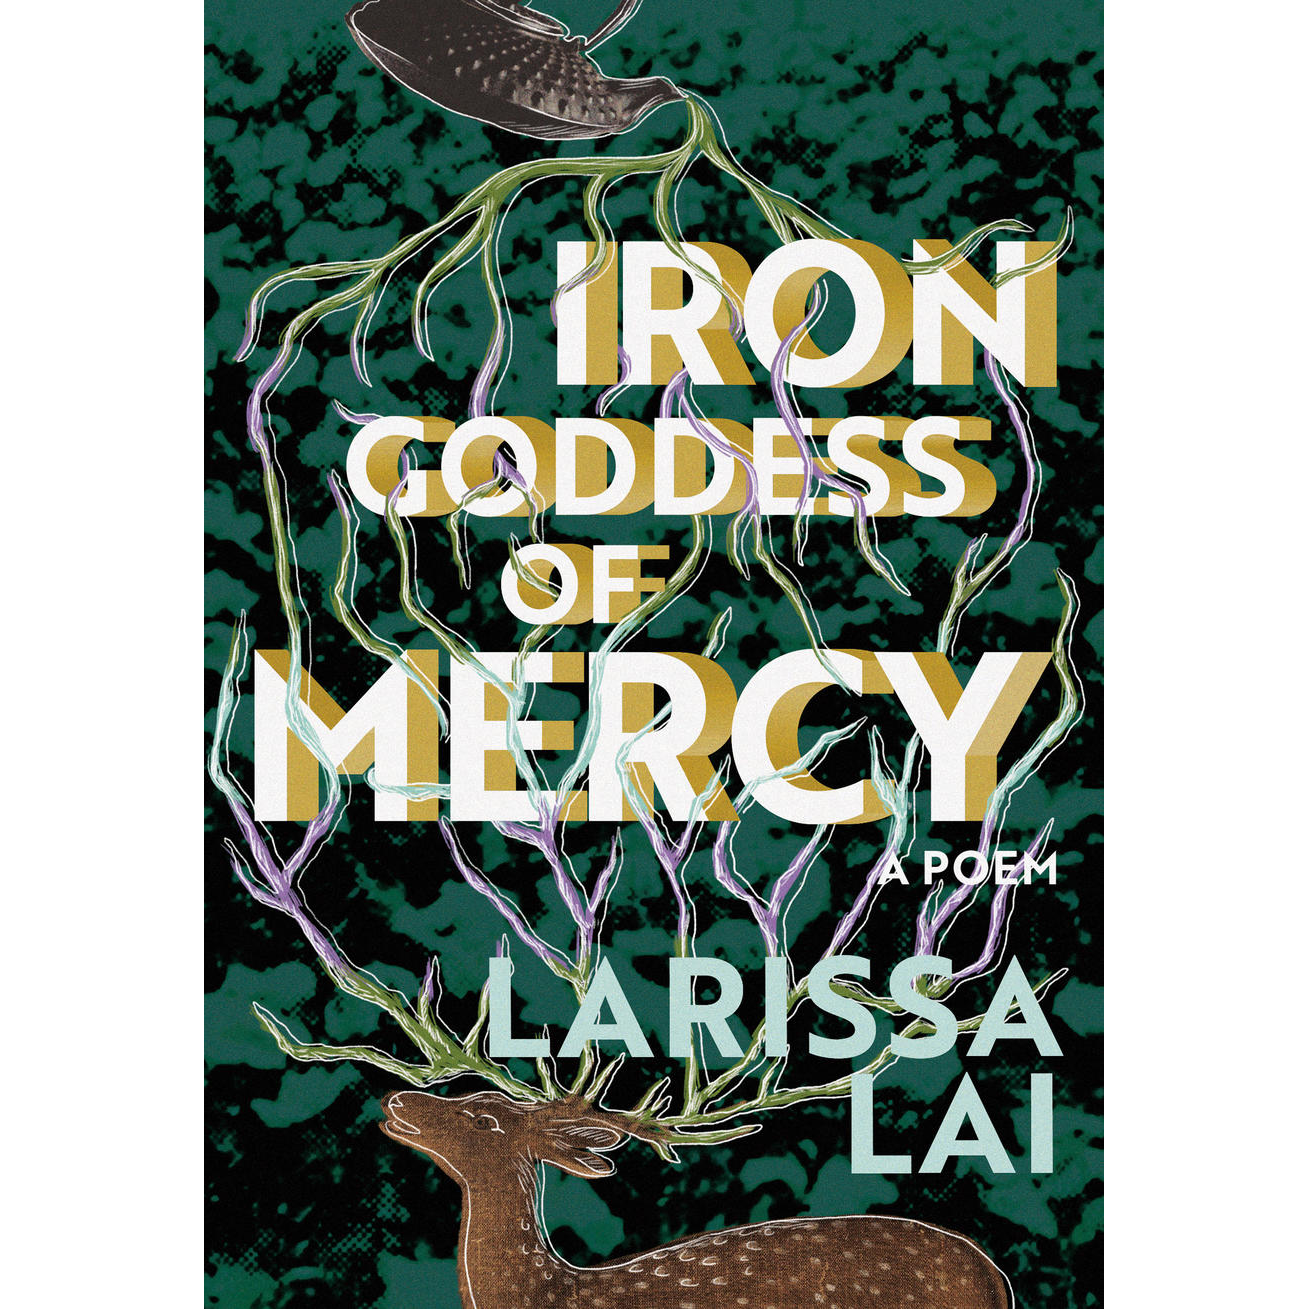 The Case for Choosing Poetry: An Annotation of Iron Goddess of Mercy